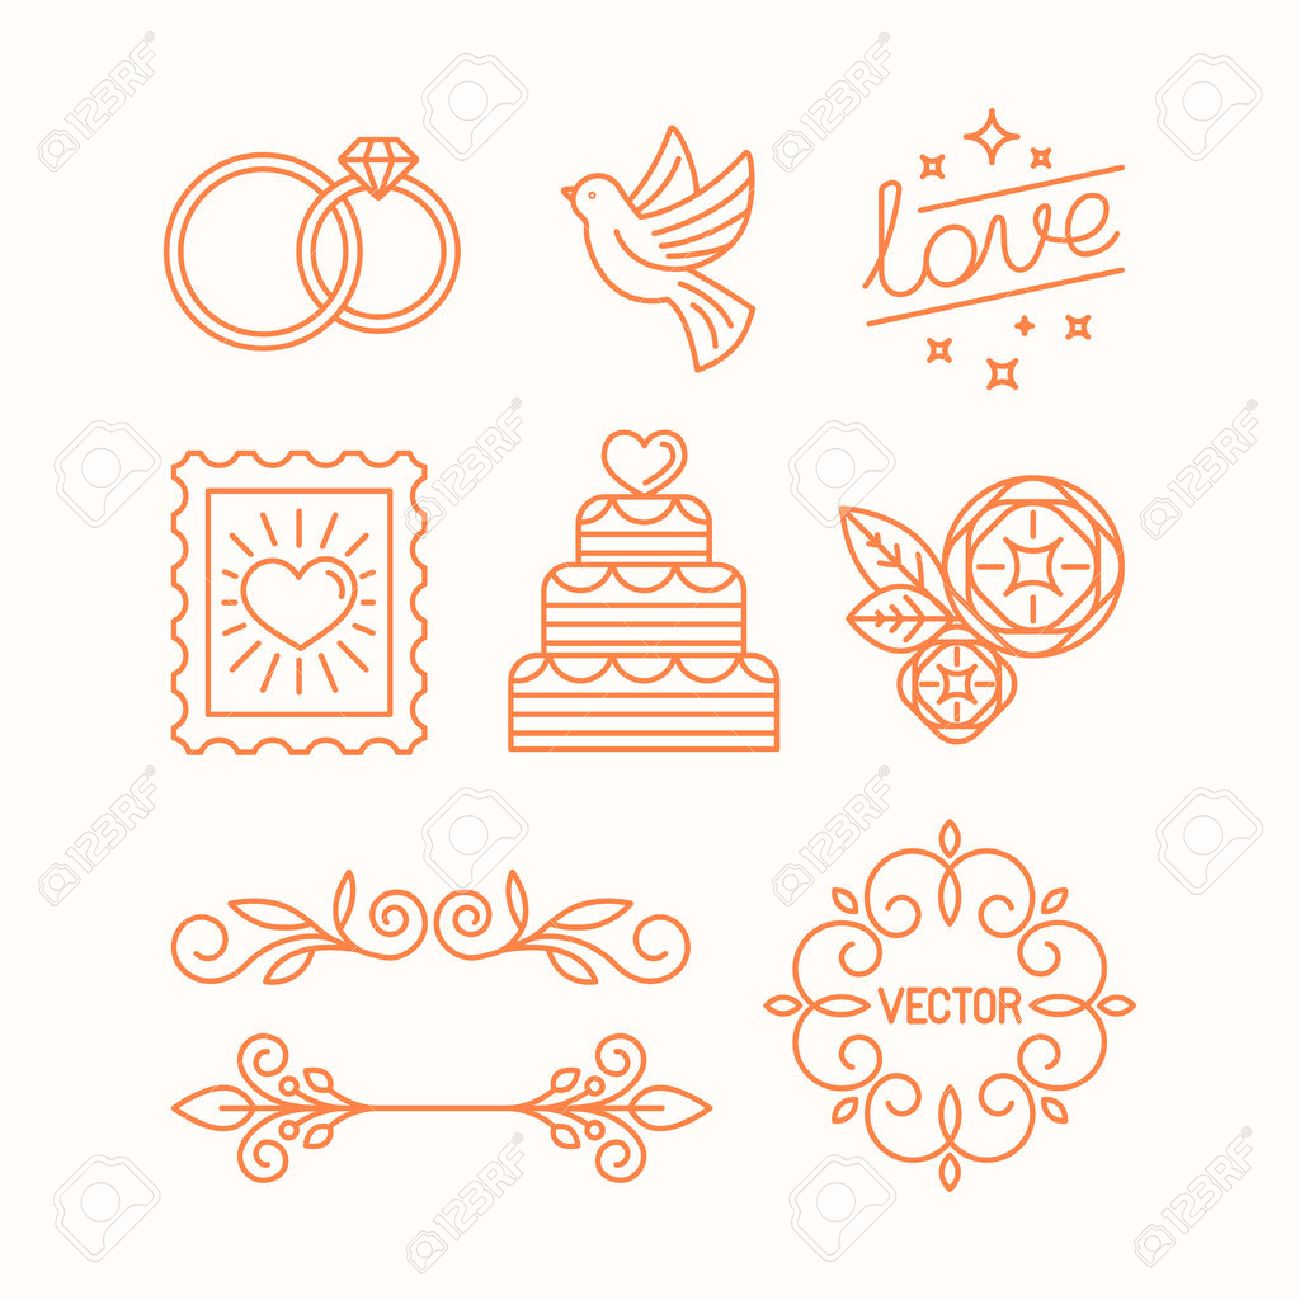 Vector linear design elements icons and frame for wedding vector linear design elements icons and frame for wedding invitations and stationery decoration set junglespirit Images